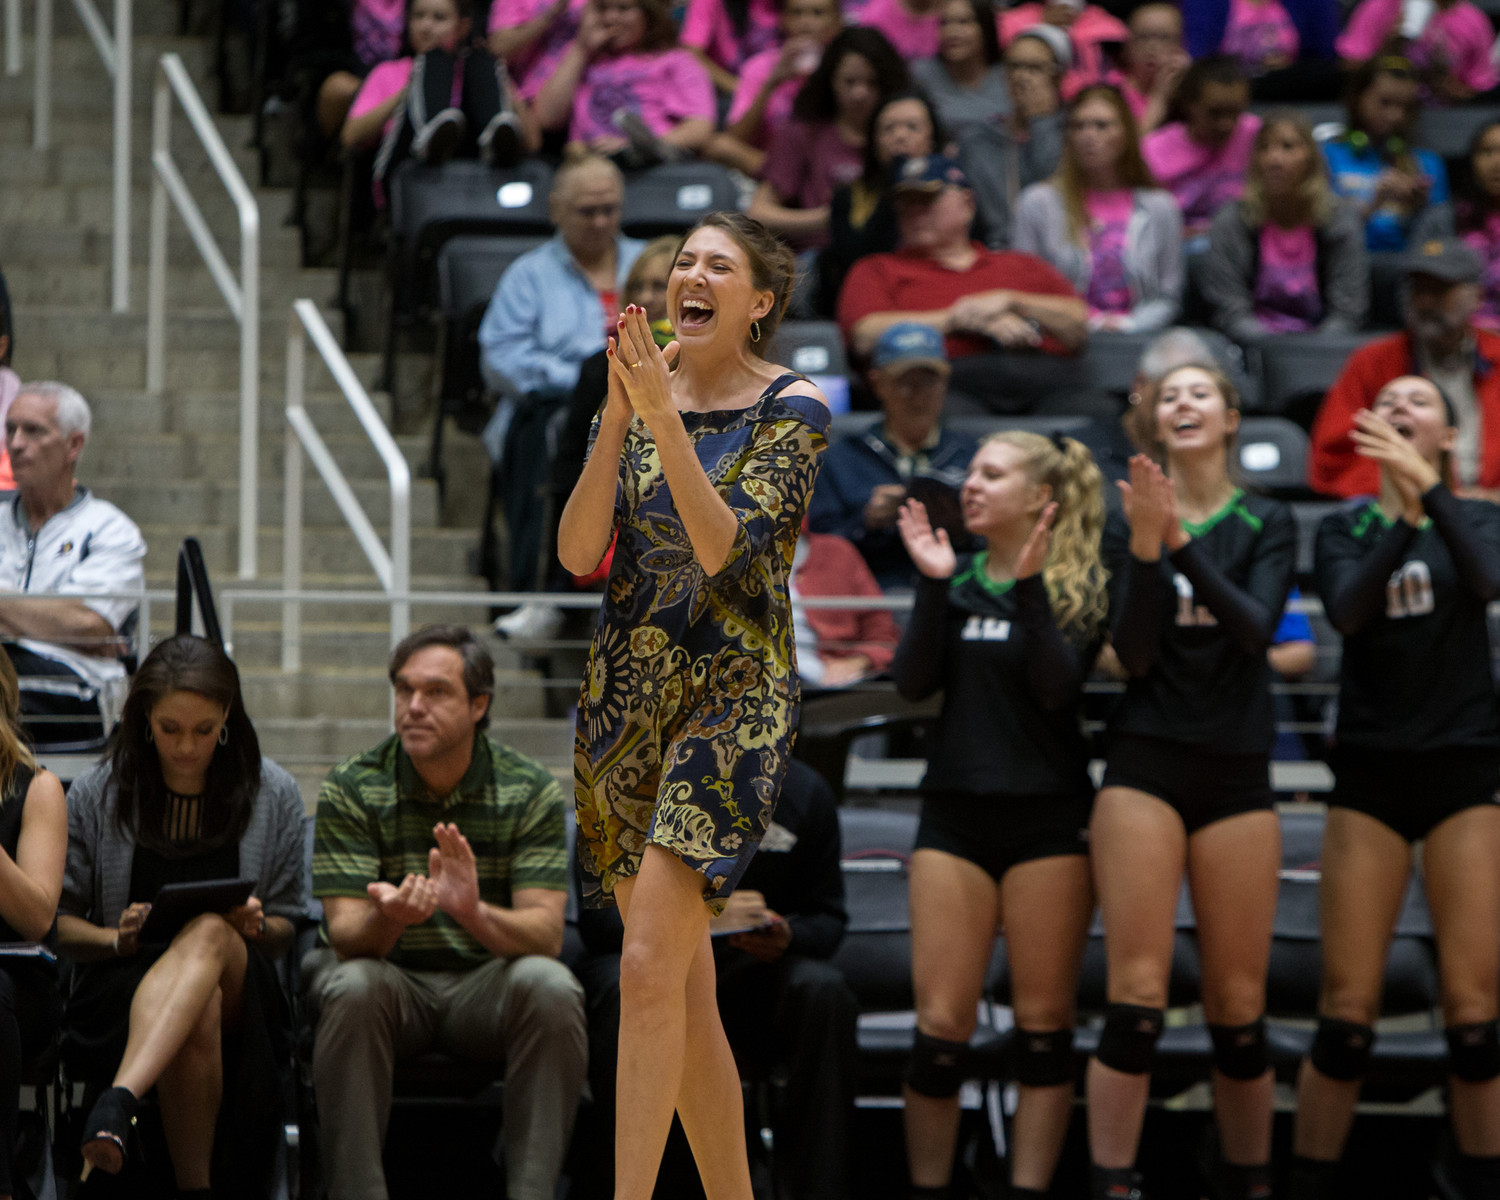 Kori (Cooper) Clements led Cedar Park to the state tournament during her short time as head coach with the Timberwolves. She resigned as head coach at Amarillo HS, her alma mater, last week.